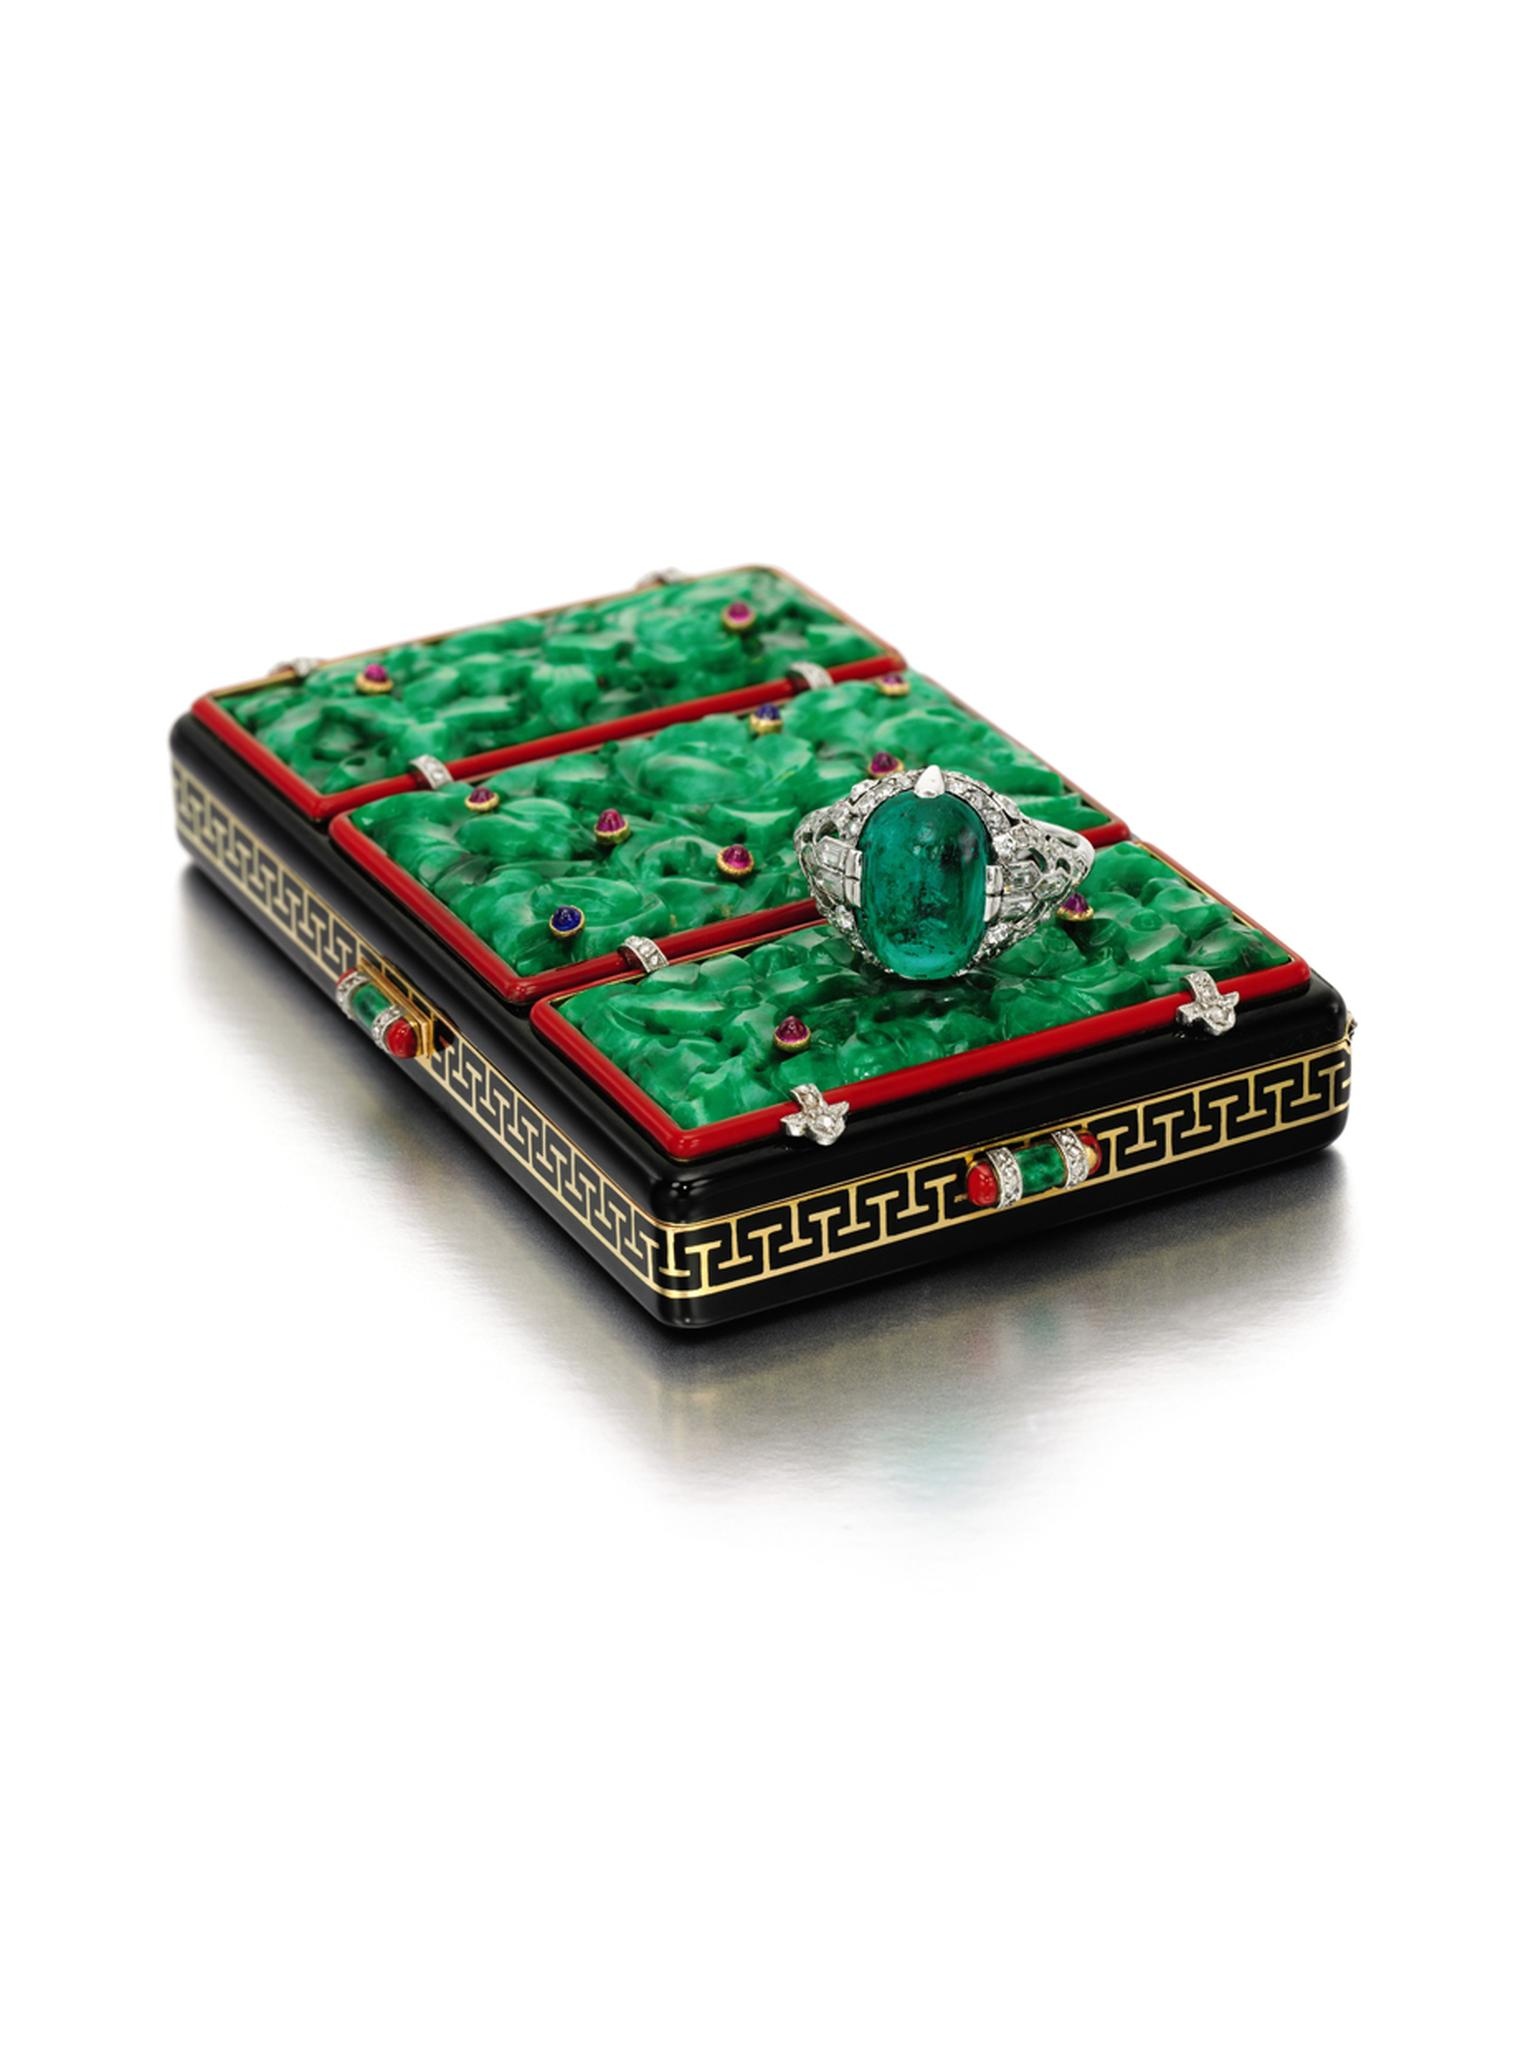 Lot 282, Lacloche Frères 1920s gem set, enamel and diamond vanity case, set with three carved jadeite plaques inset with cabochon sapphires and rubies up for auction at Sotheby's London. (estimate: £ 8,000-12,000).